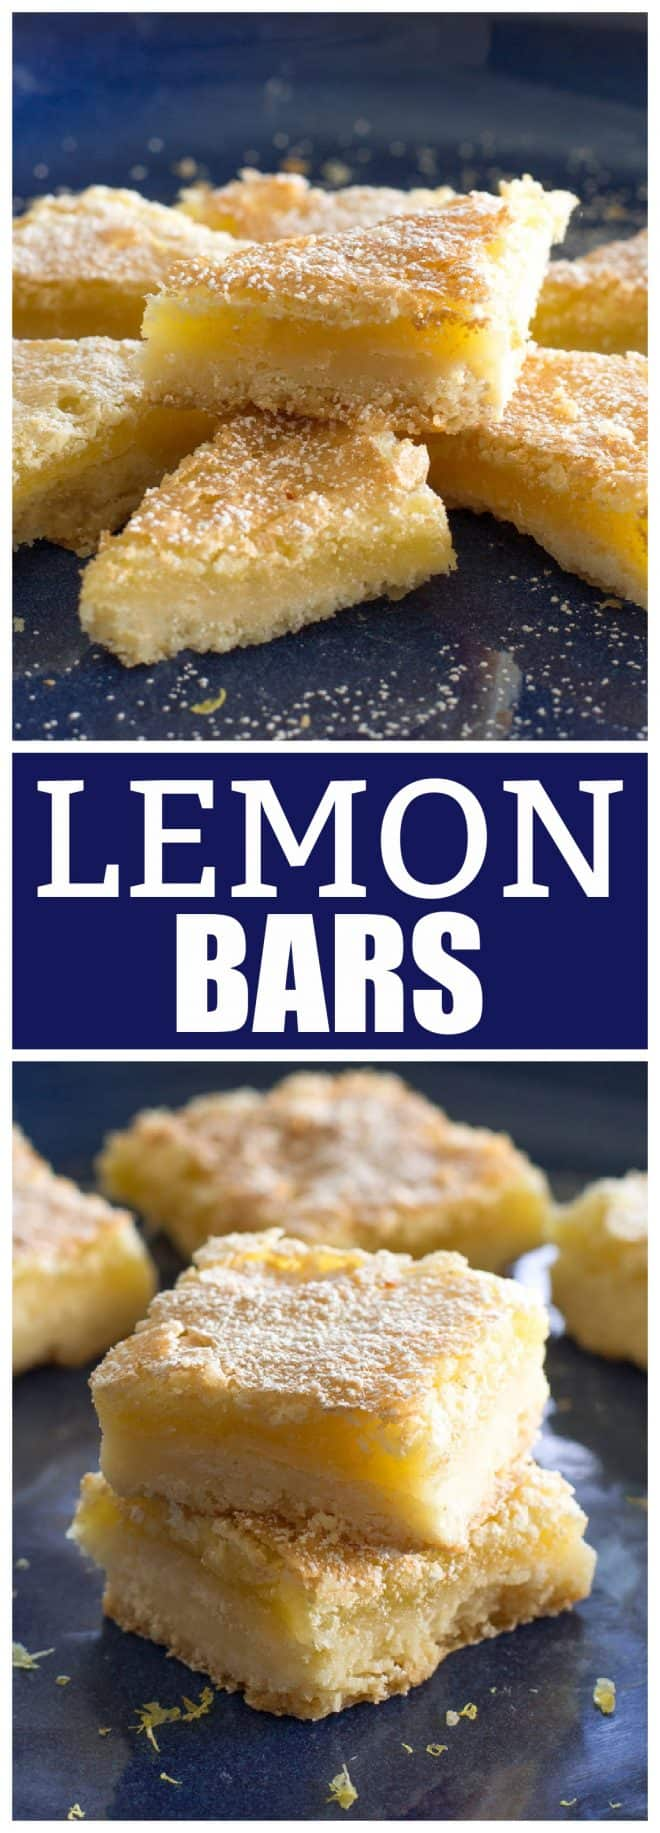 lemon bars